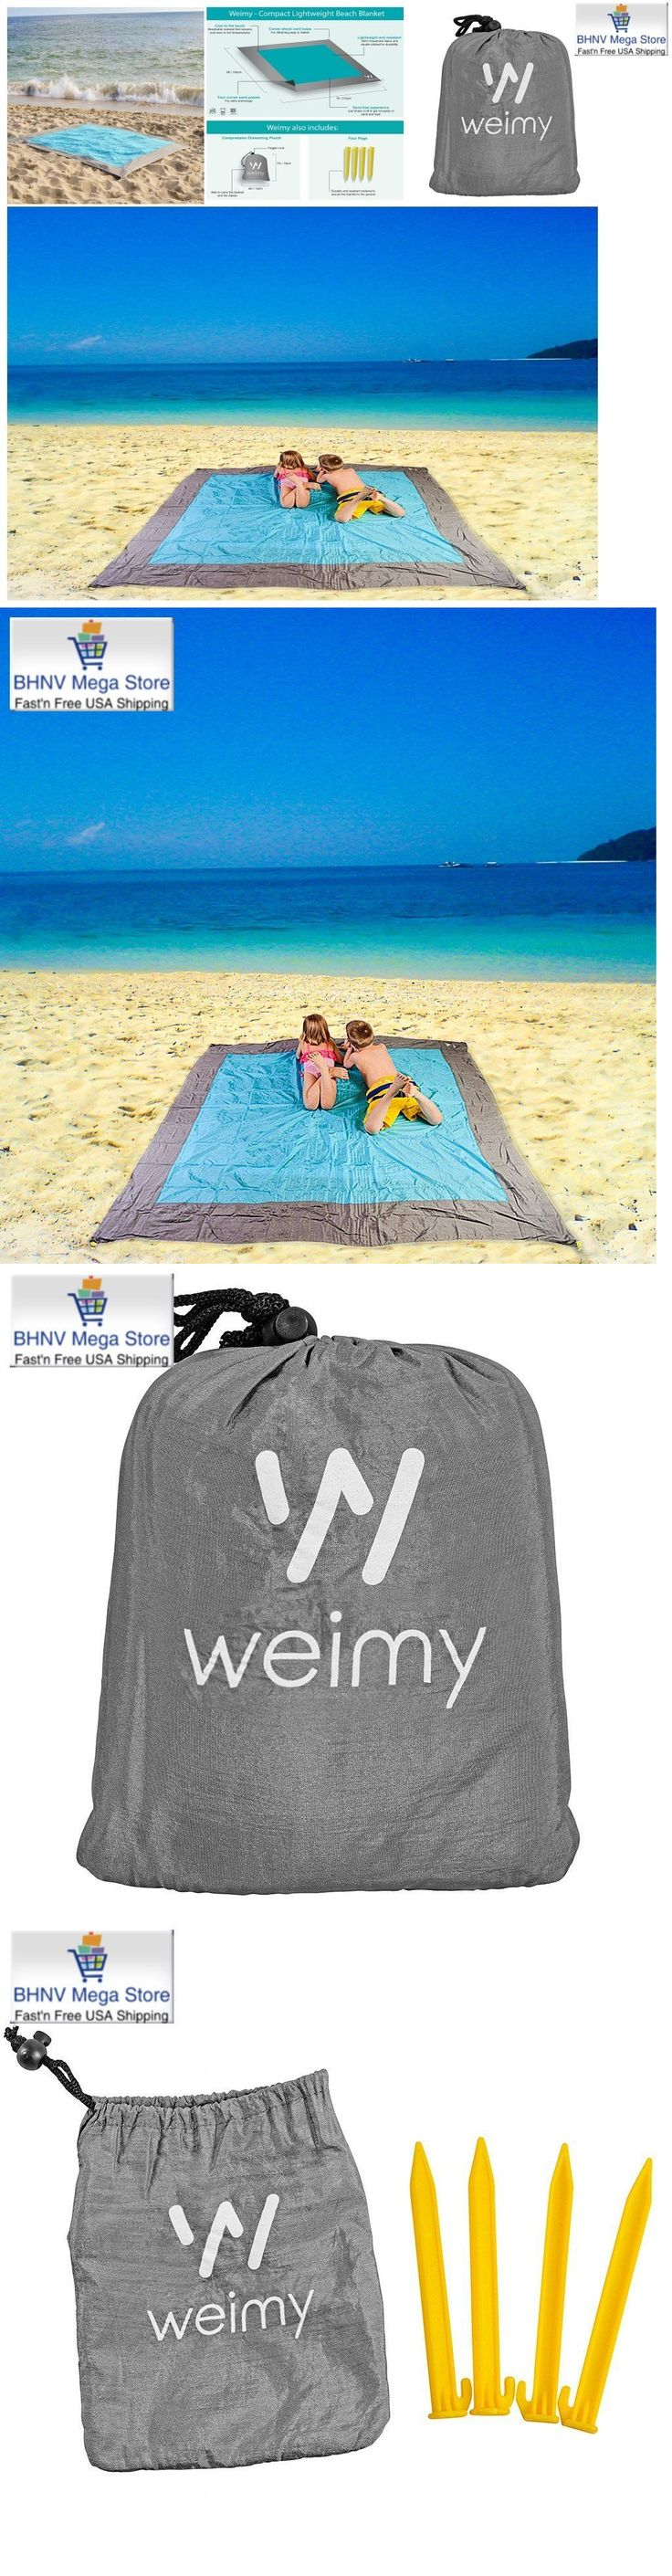 Canopies and Shelters 179011: Lightweight Compact Beach Picnic Mat Blanket Quick Drying Sand Free Waterproof -> BUY IT NOW ONLY: $36.9 on eBay!